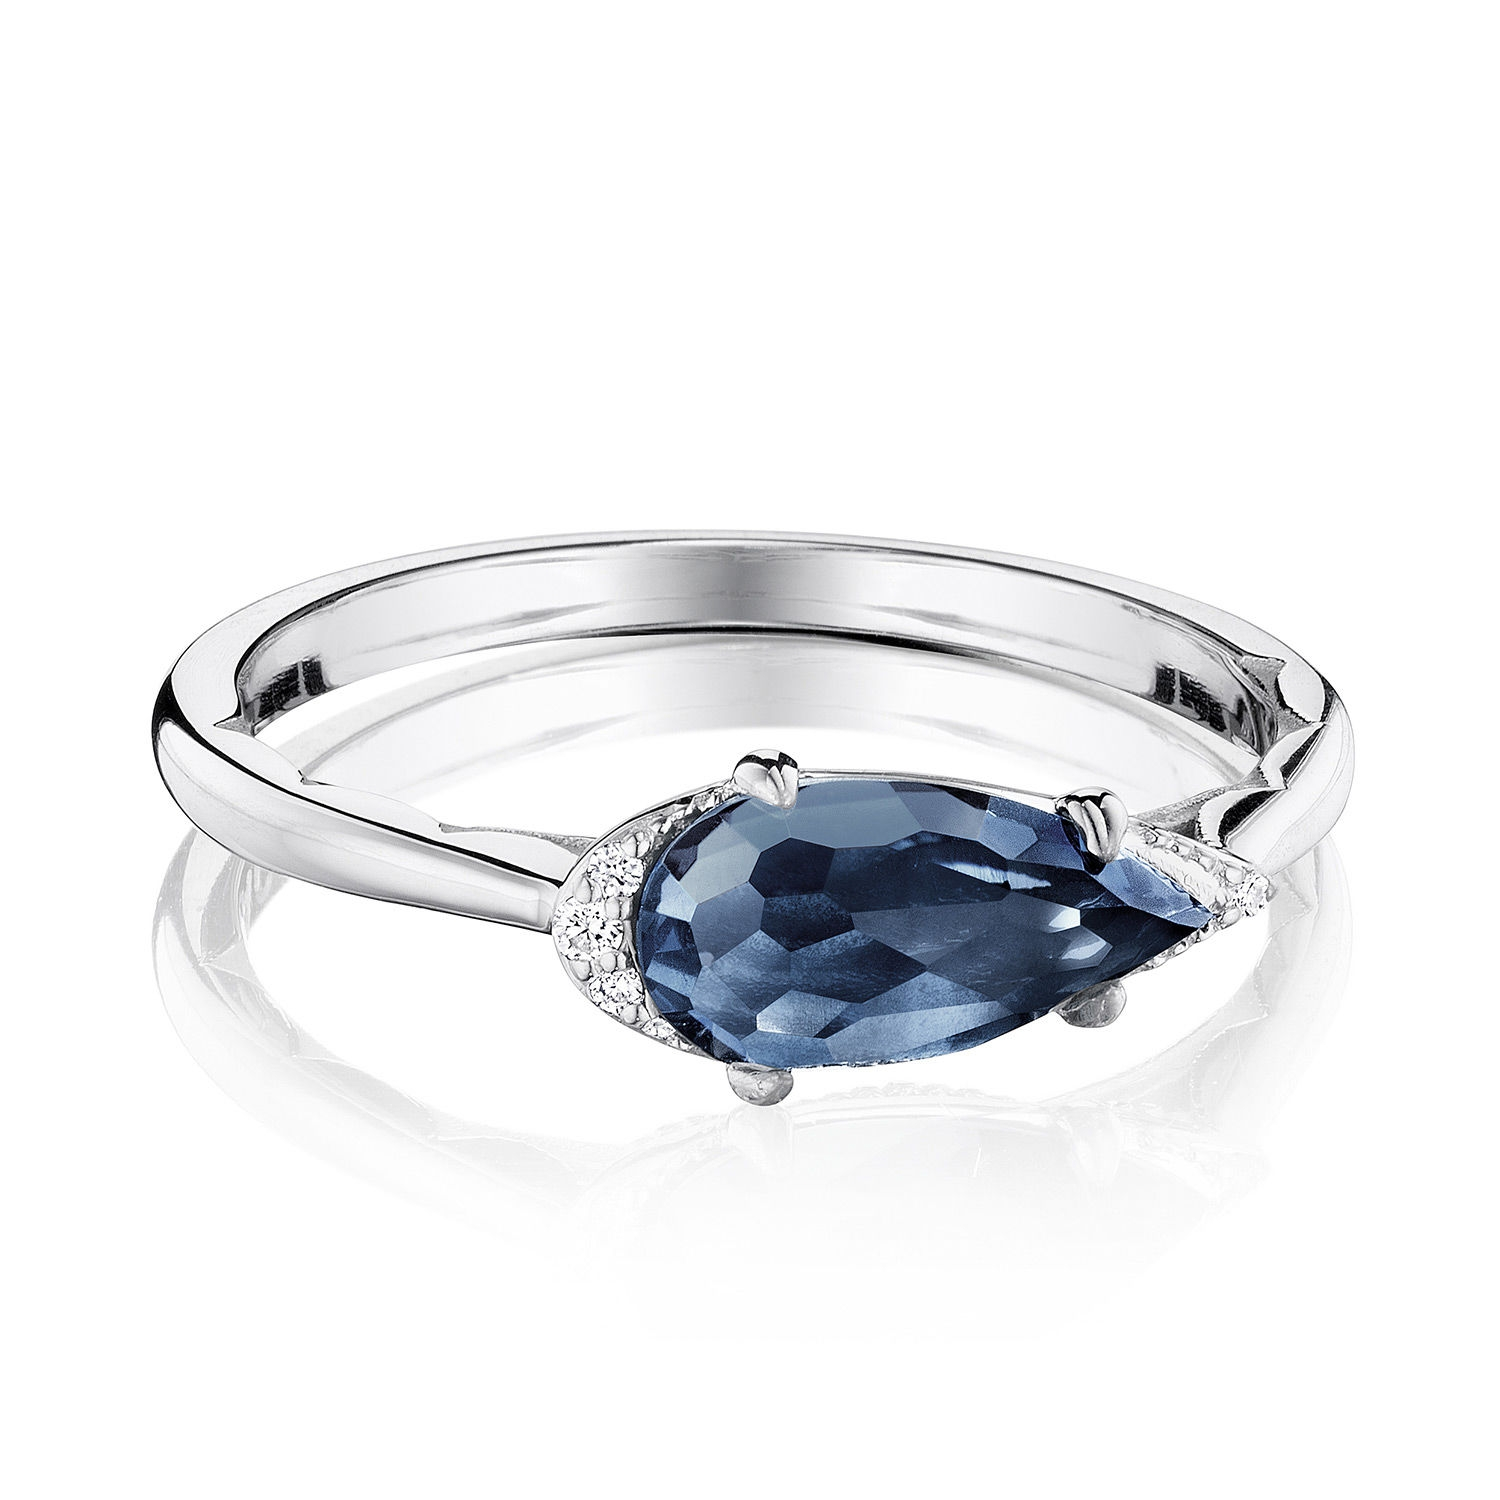 Tacori SR23333 Solitaire Pear-Shaped Ring with London Blue Topaz